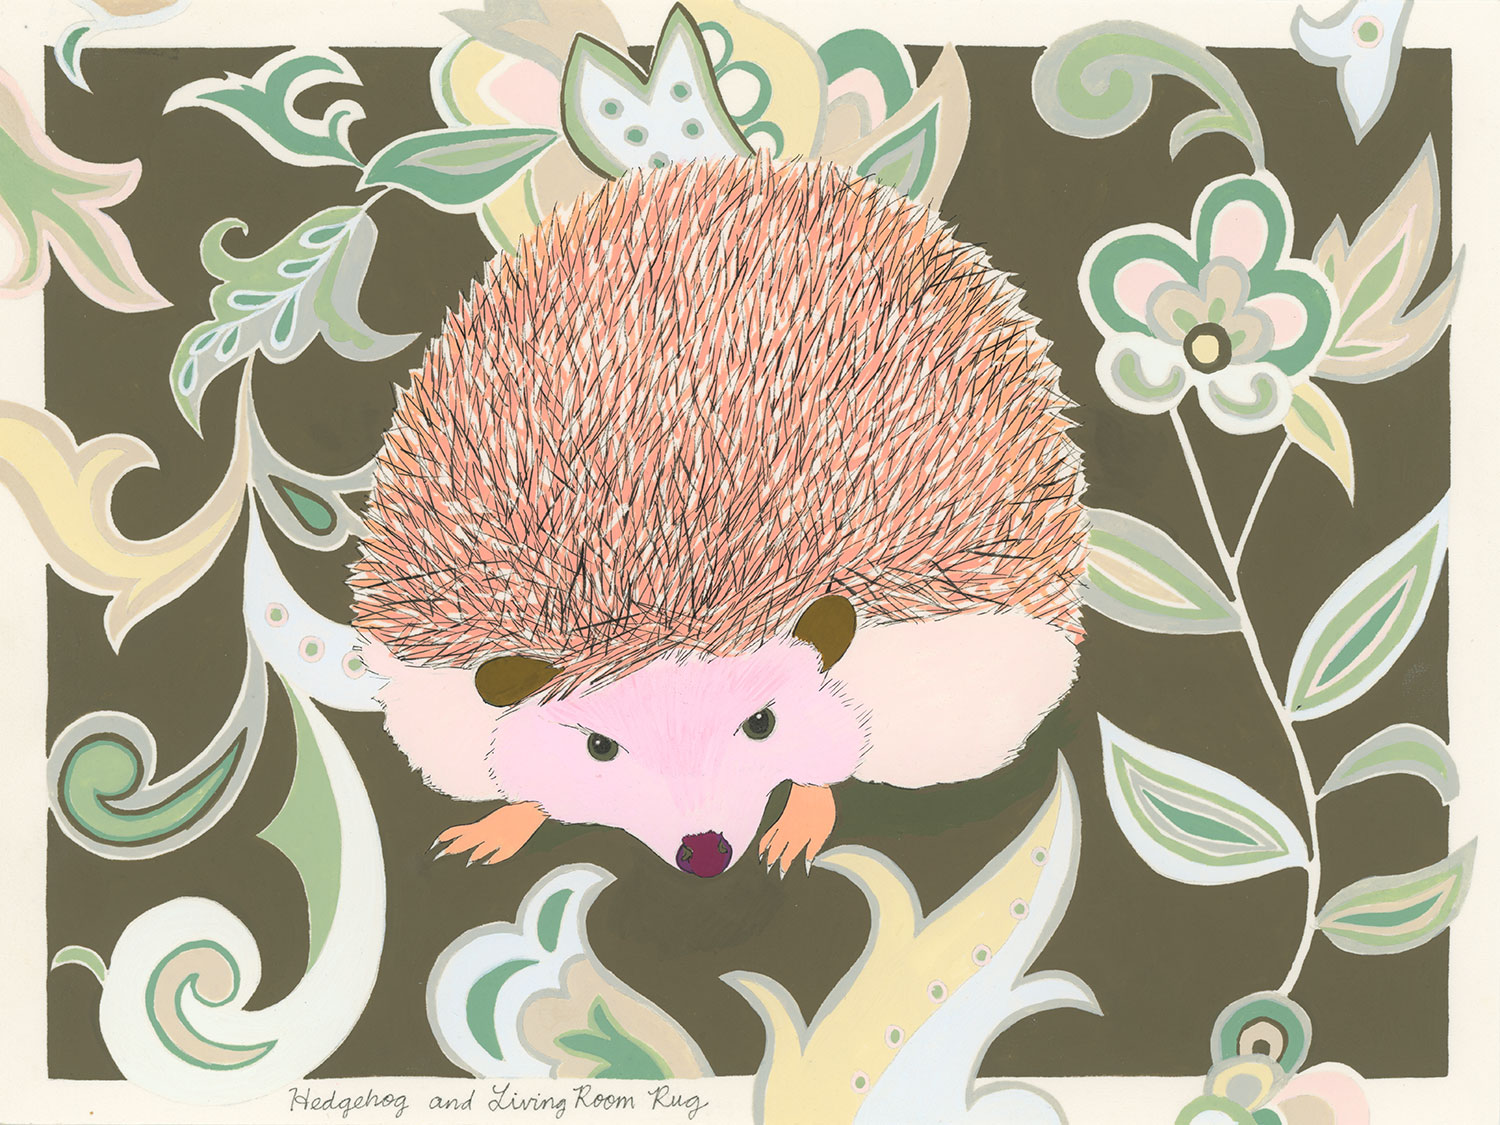 Hedgehog and Living Room Rug (in advance of being sat on by a cat)